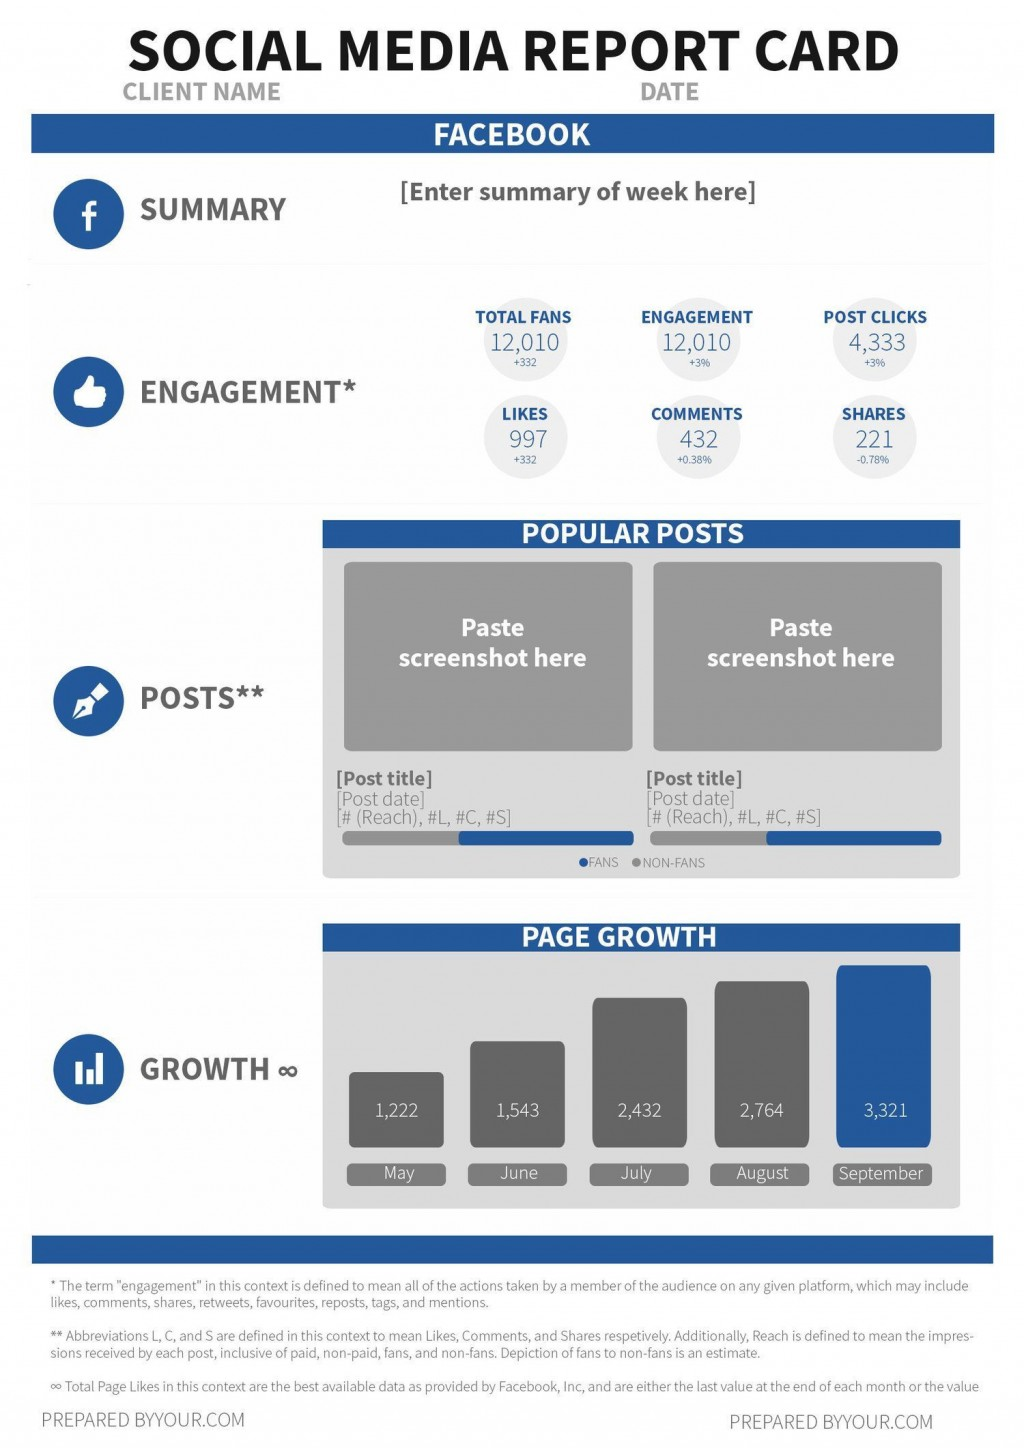 001 Fearsome Social Media Report Template Photo  Templates Powerpoint Monthly FreeLarge